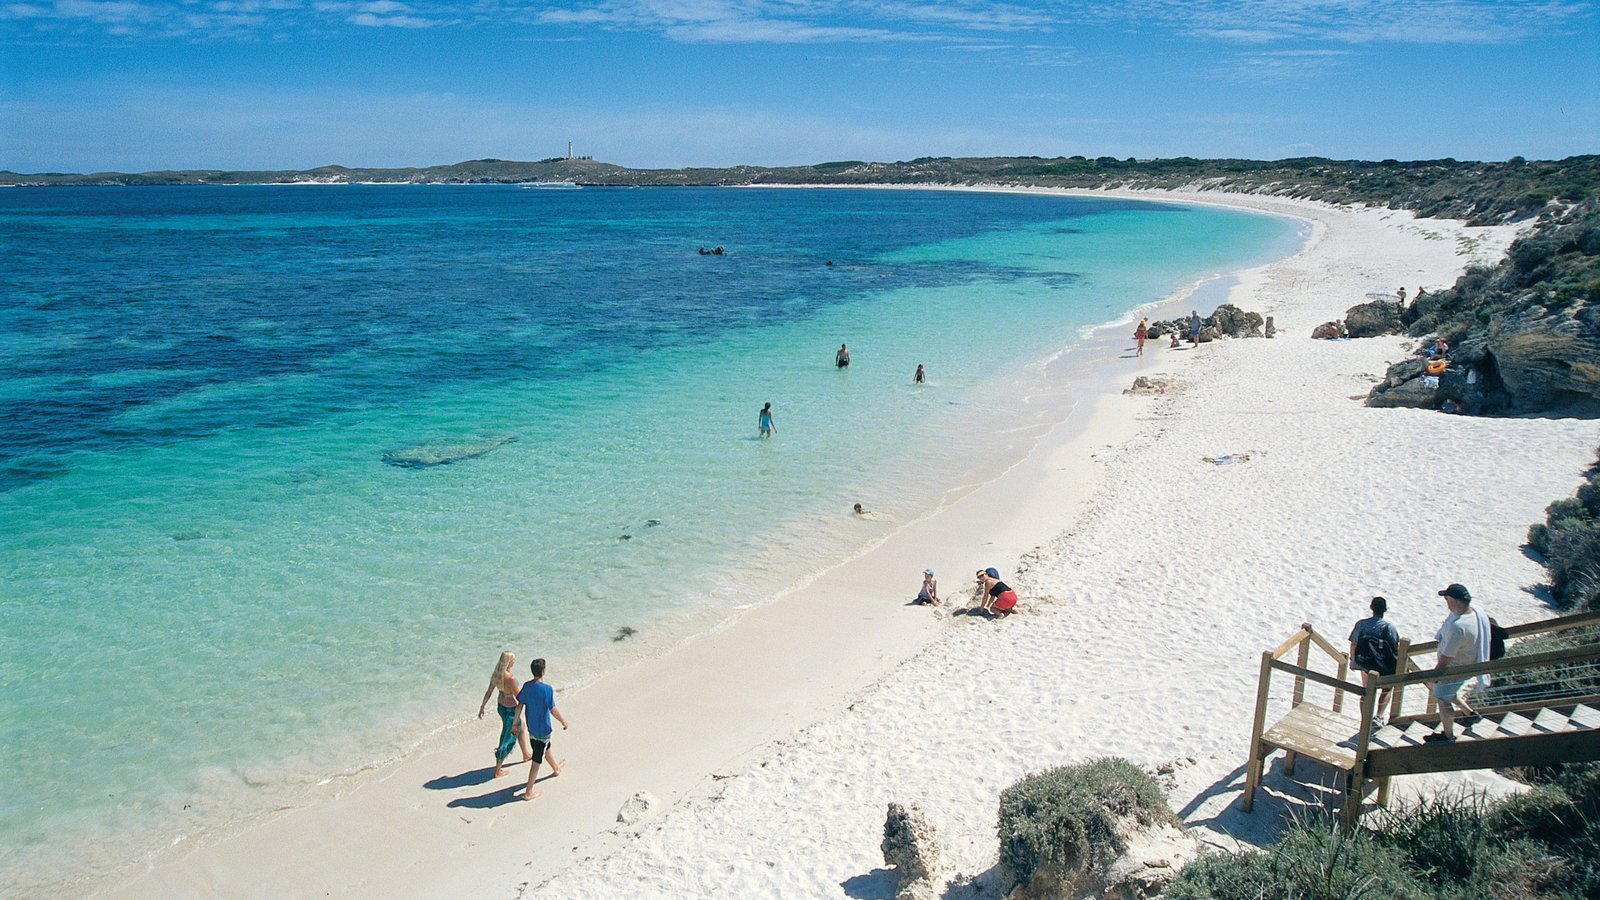 western australia coastal attractions pdf